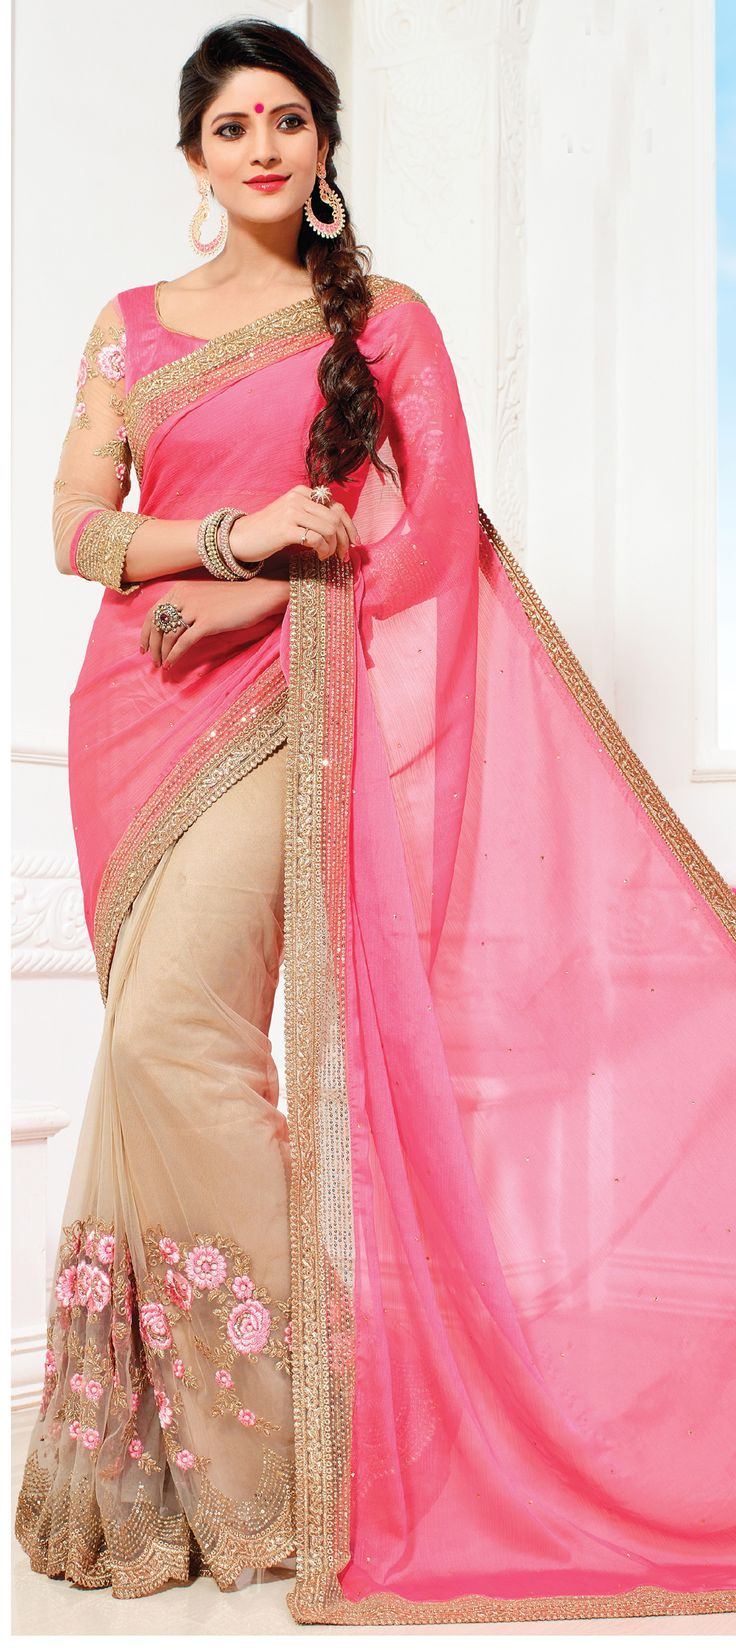 175687: Beige and Brown, Pink and Majenta color family Bridal Wedding Sarees, Party Wear Sarees with matching unstitched blouse.